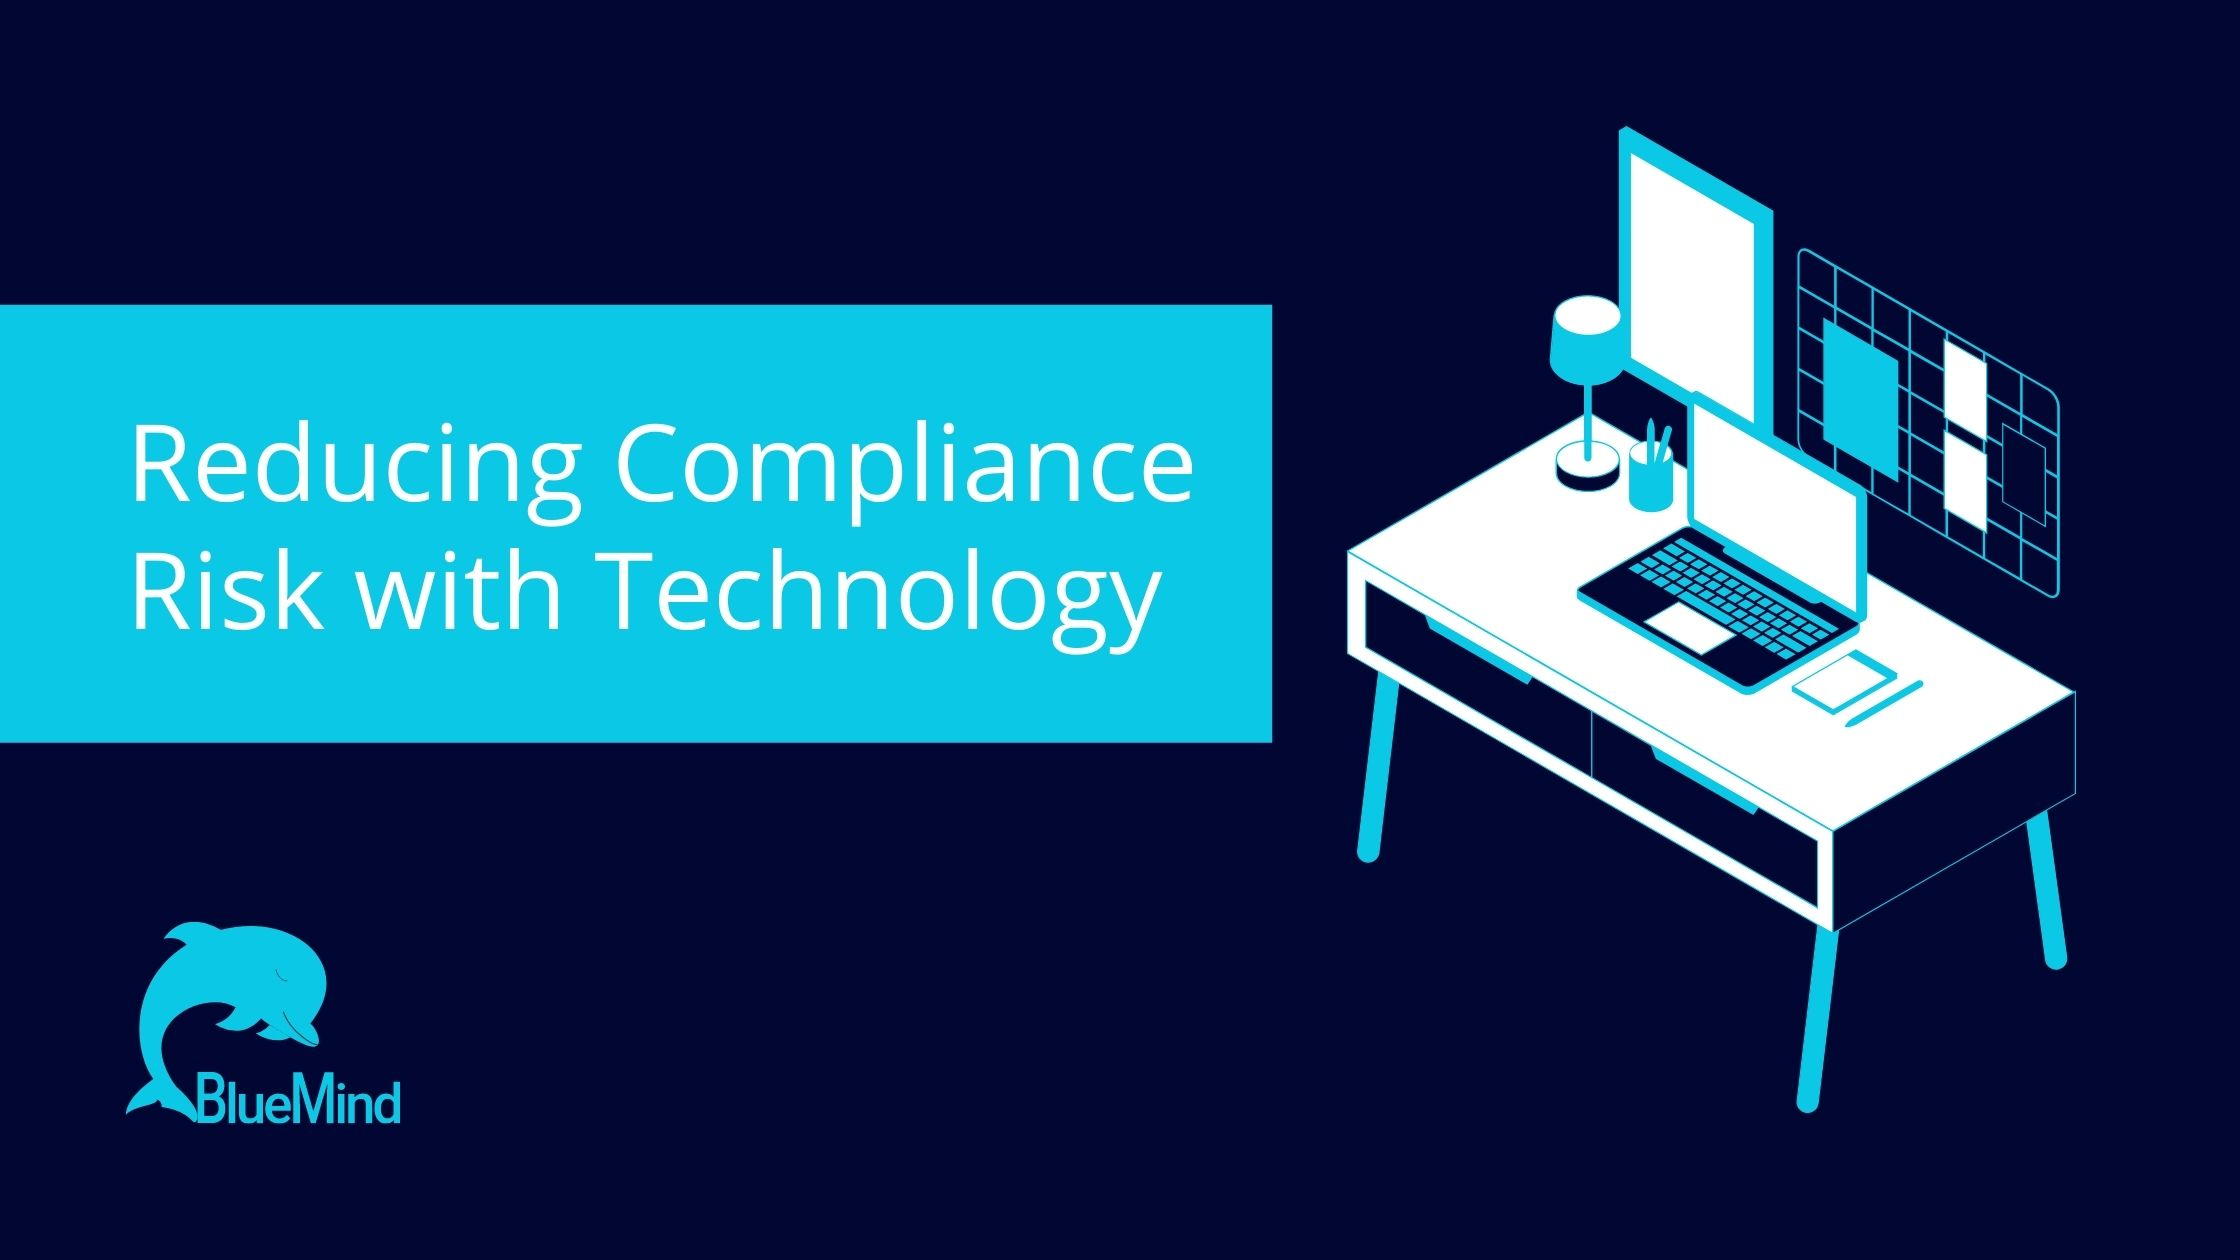 TEchnology helps in reducing compliance